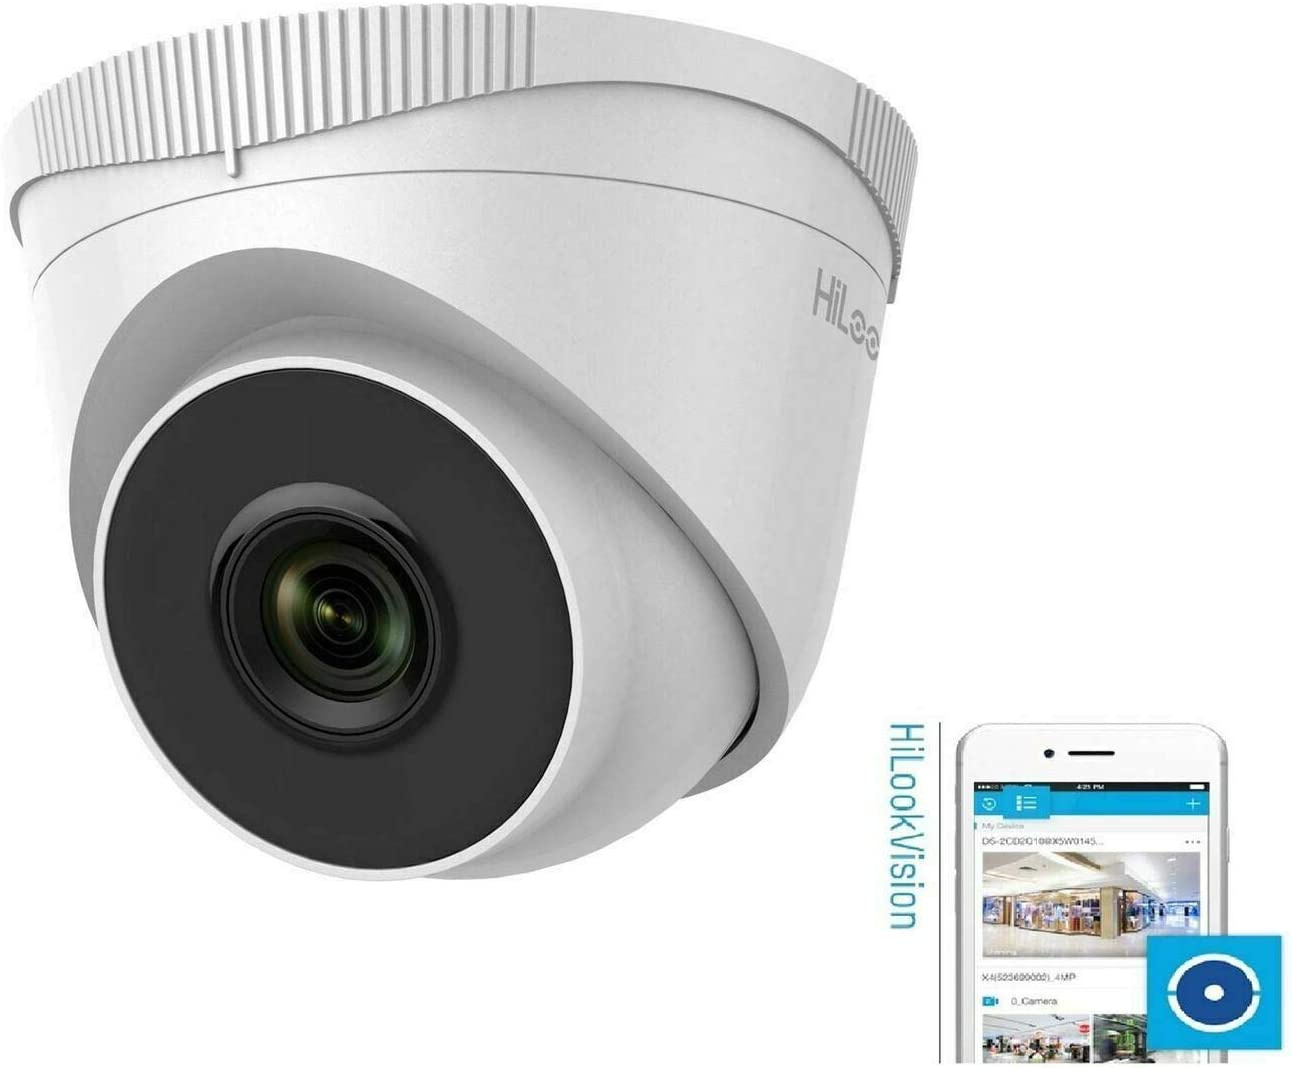 HiLook Series 4MP CMOS Outdoor IP Network CCTV Turret Camera White Hikvision IPC-T140 2.8mm HiWatch